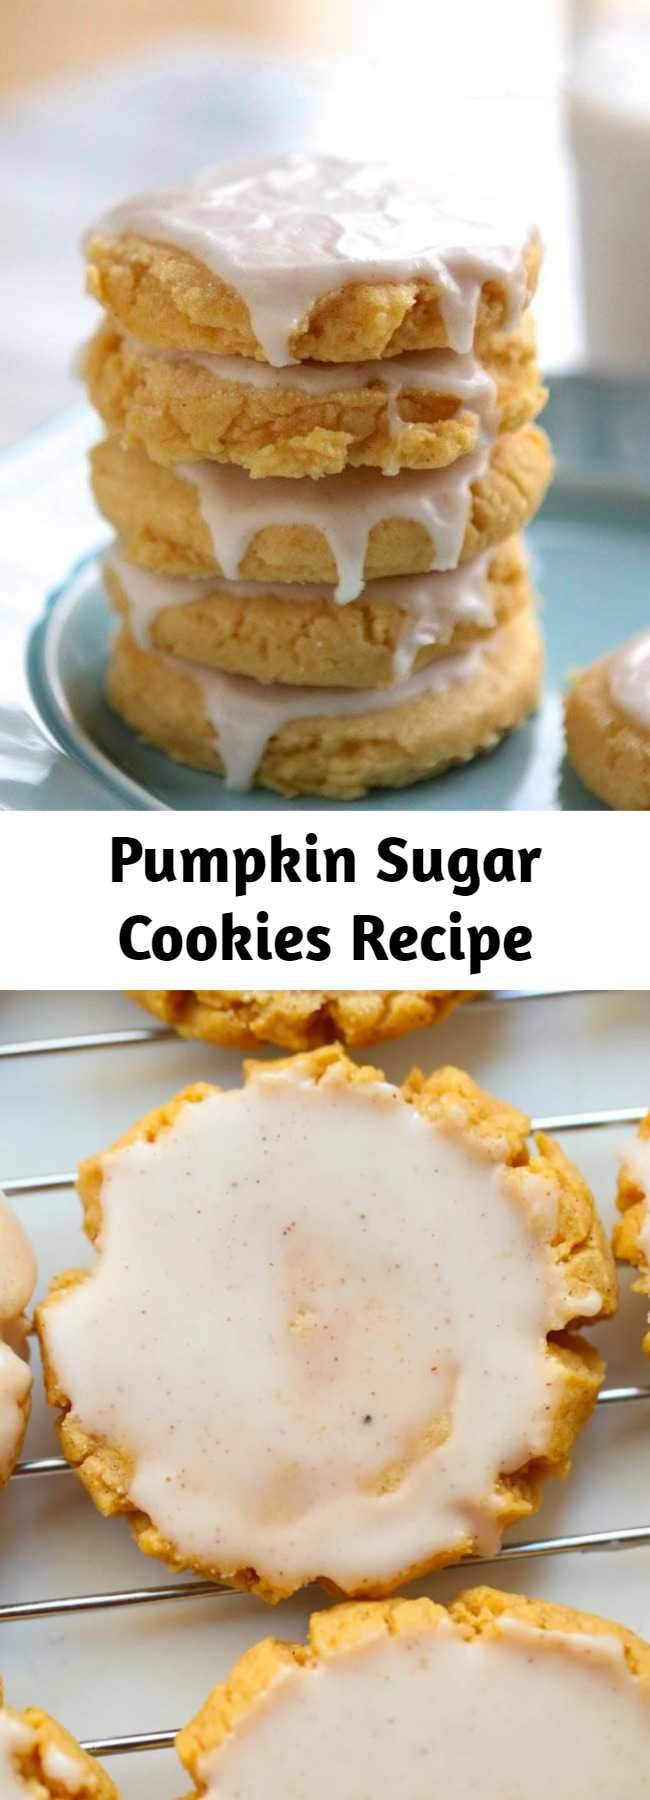 Pumpkin Sugar Cookies Recipe - Sugar Cookies just got better with a little pumpkin! This recipe creates soft, chewy, lightly spicy glazed pumpkin sugar cookies that are perfect for Fall!